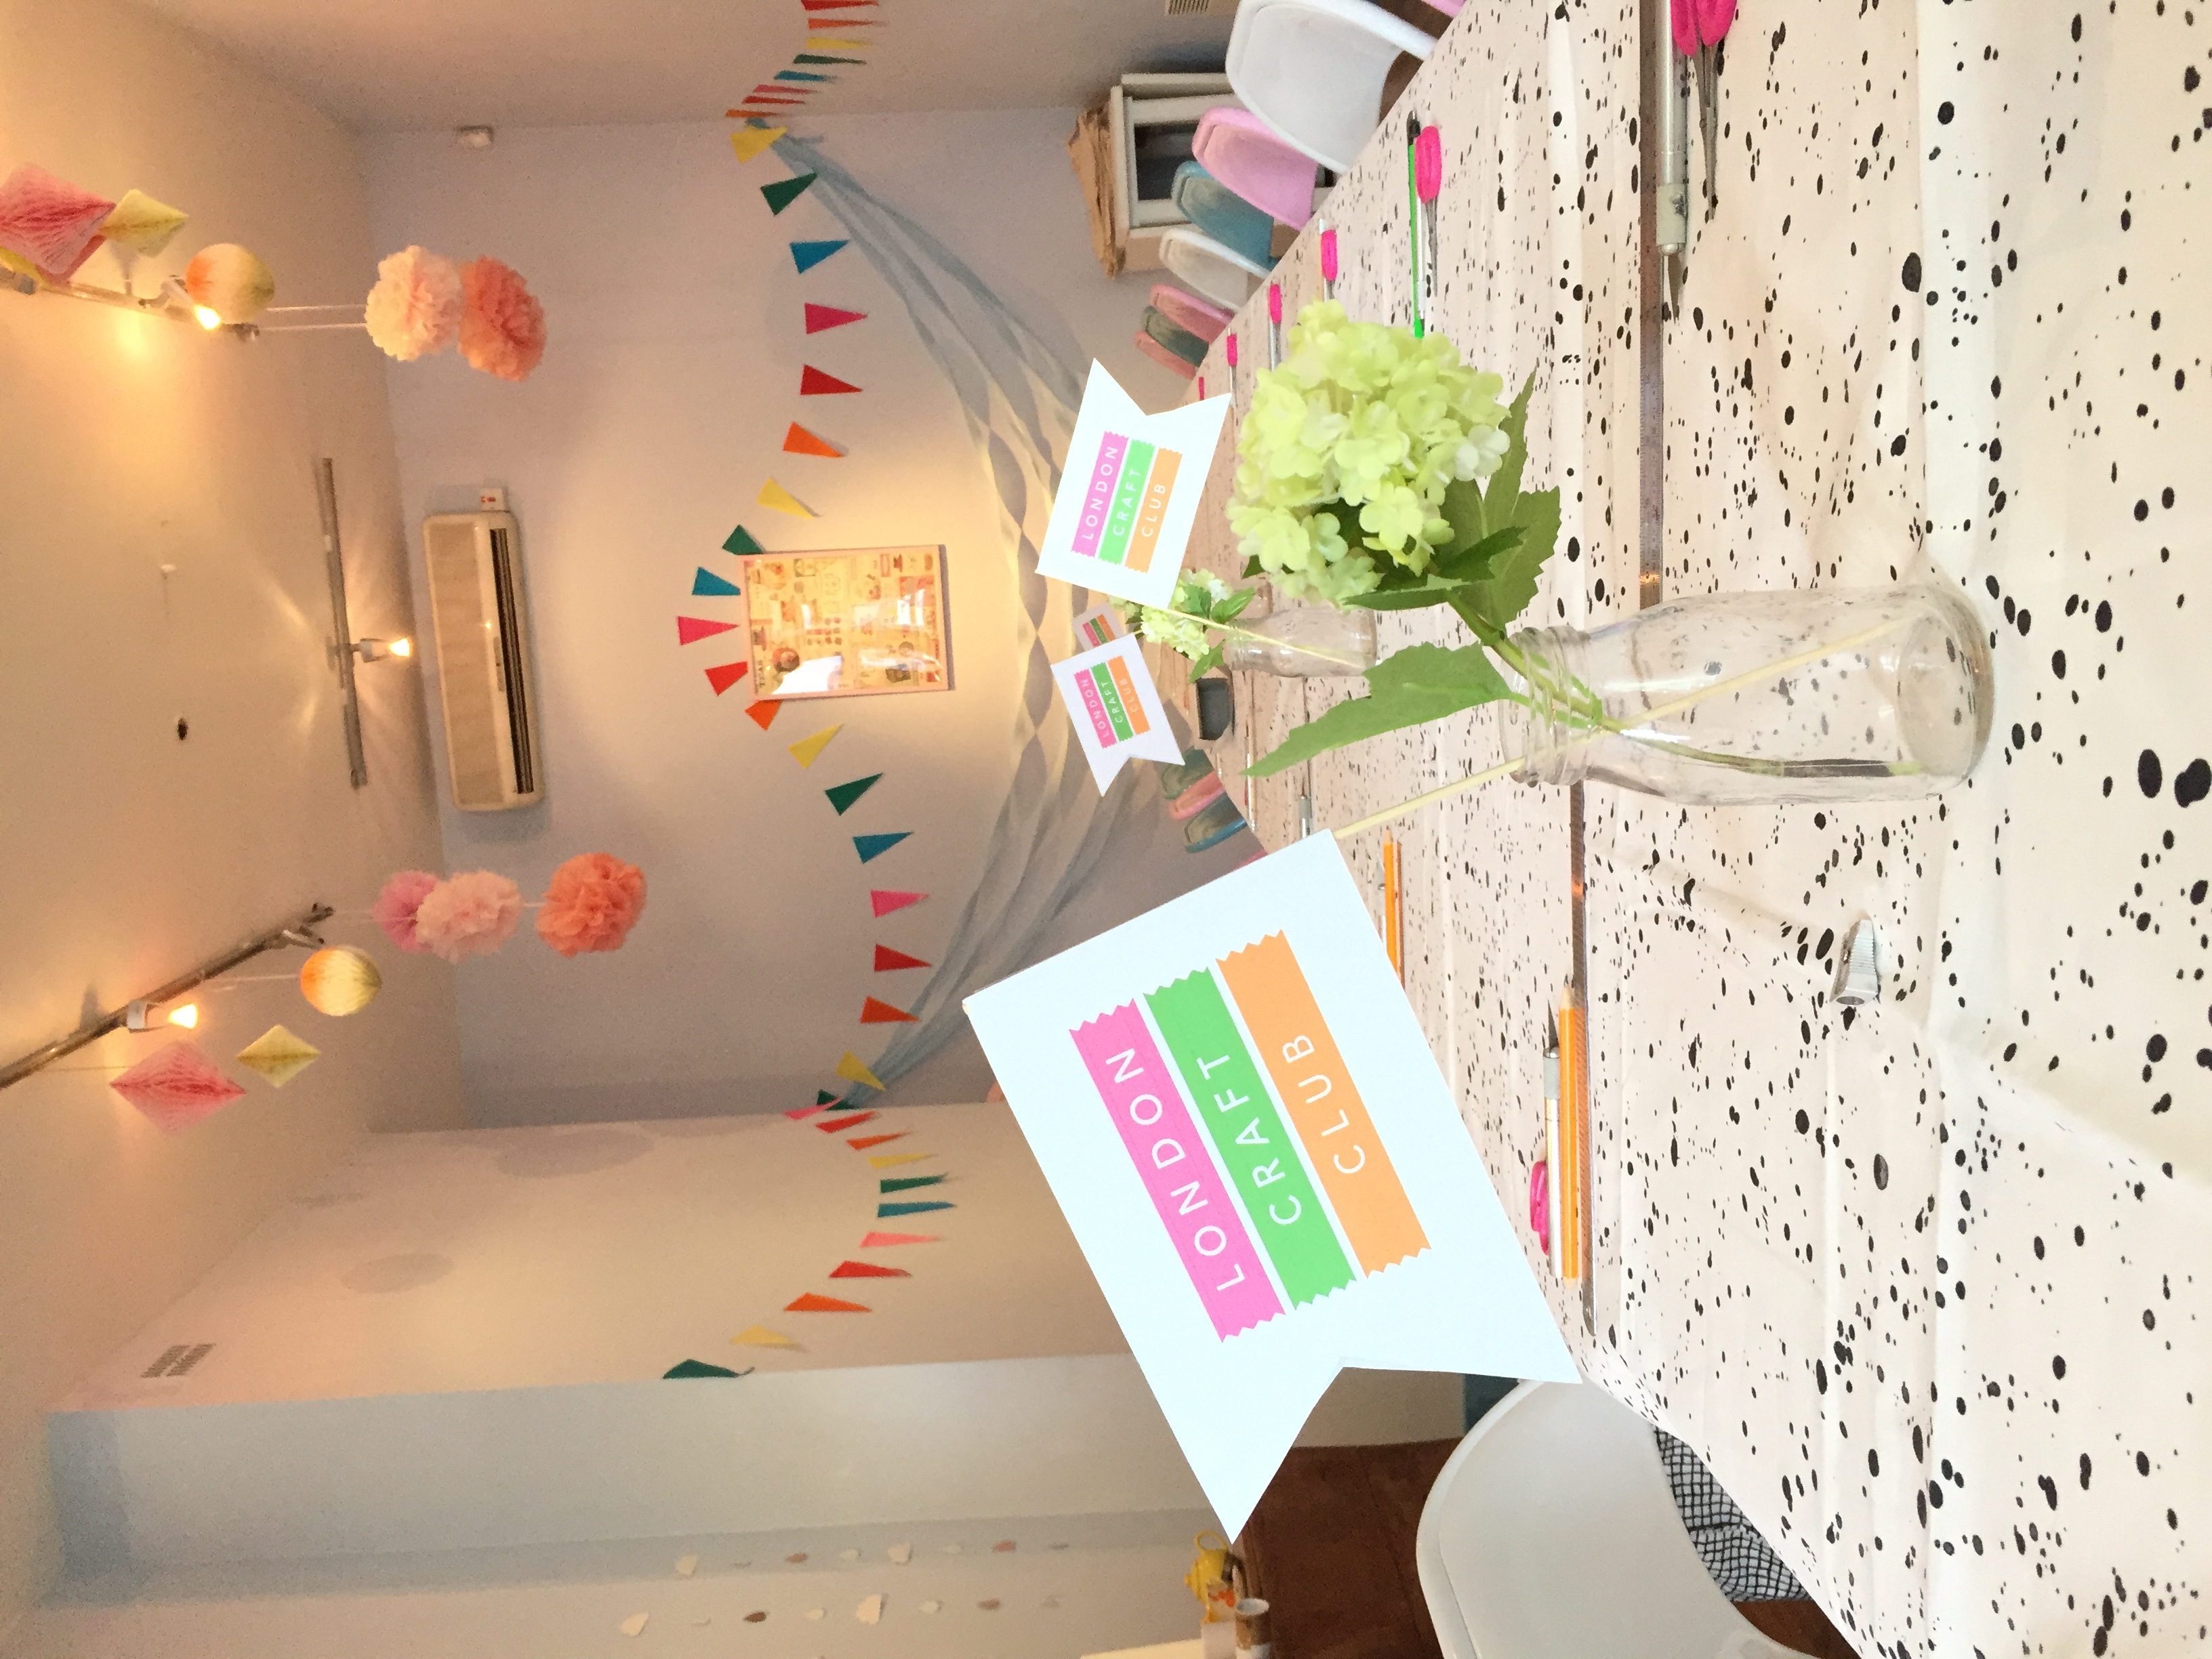 Make Your Own Big Lampshade by London Craft Club - crafts in London